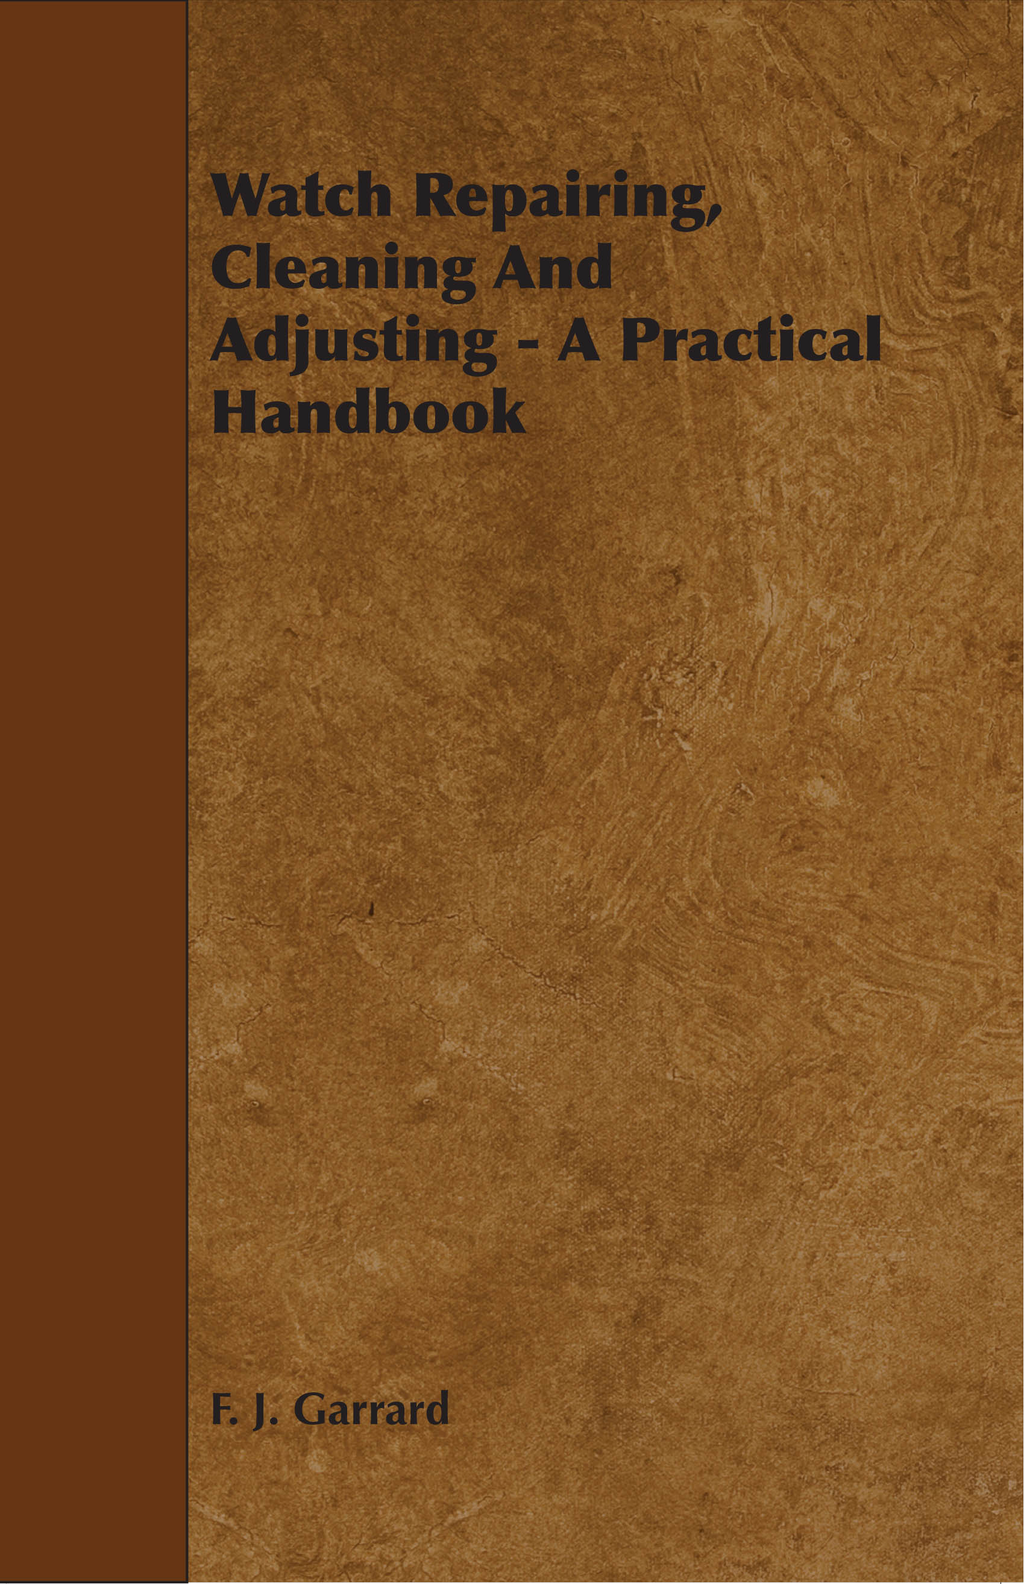 Watch Repairing, Cleaning And Adjusting - A Practical Handbook By: F. J. Garrard